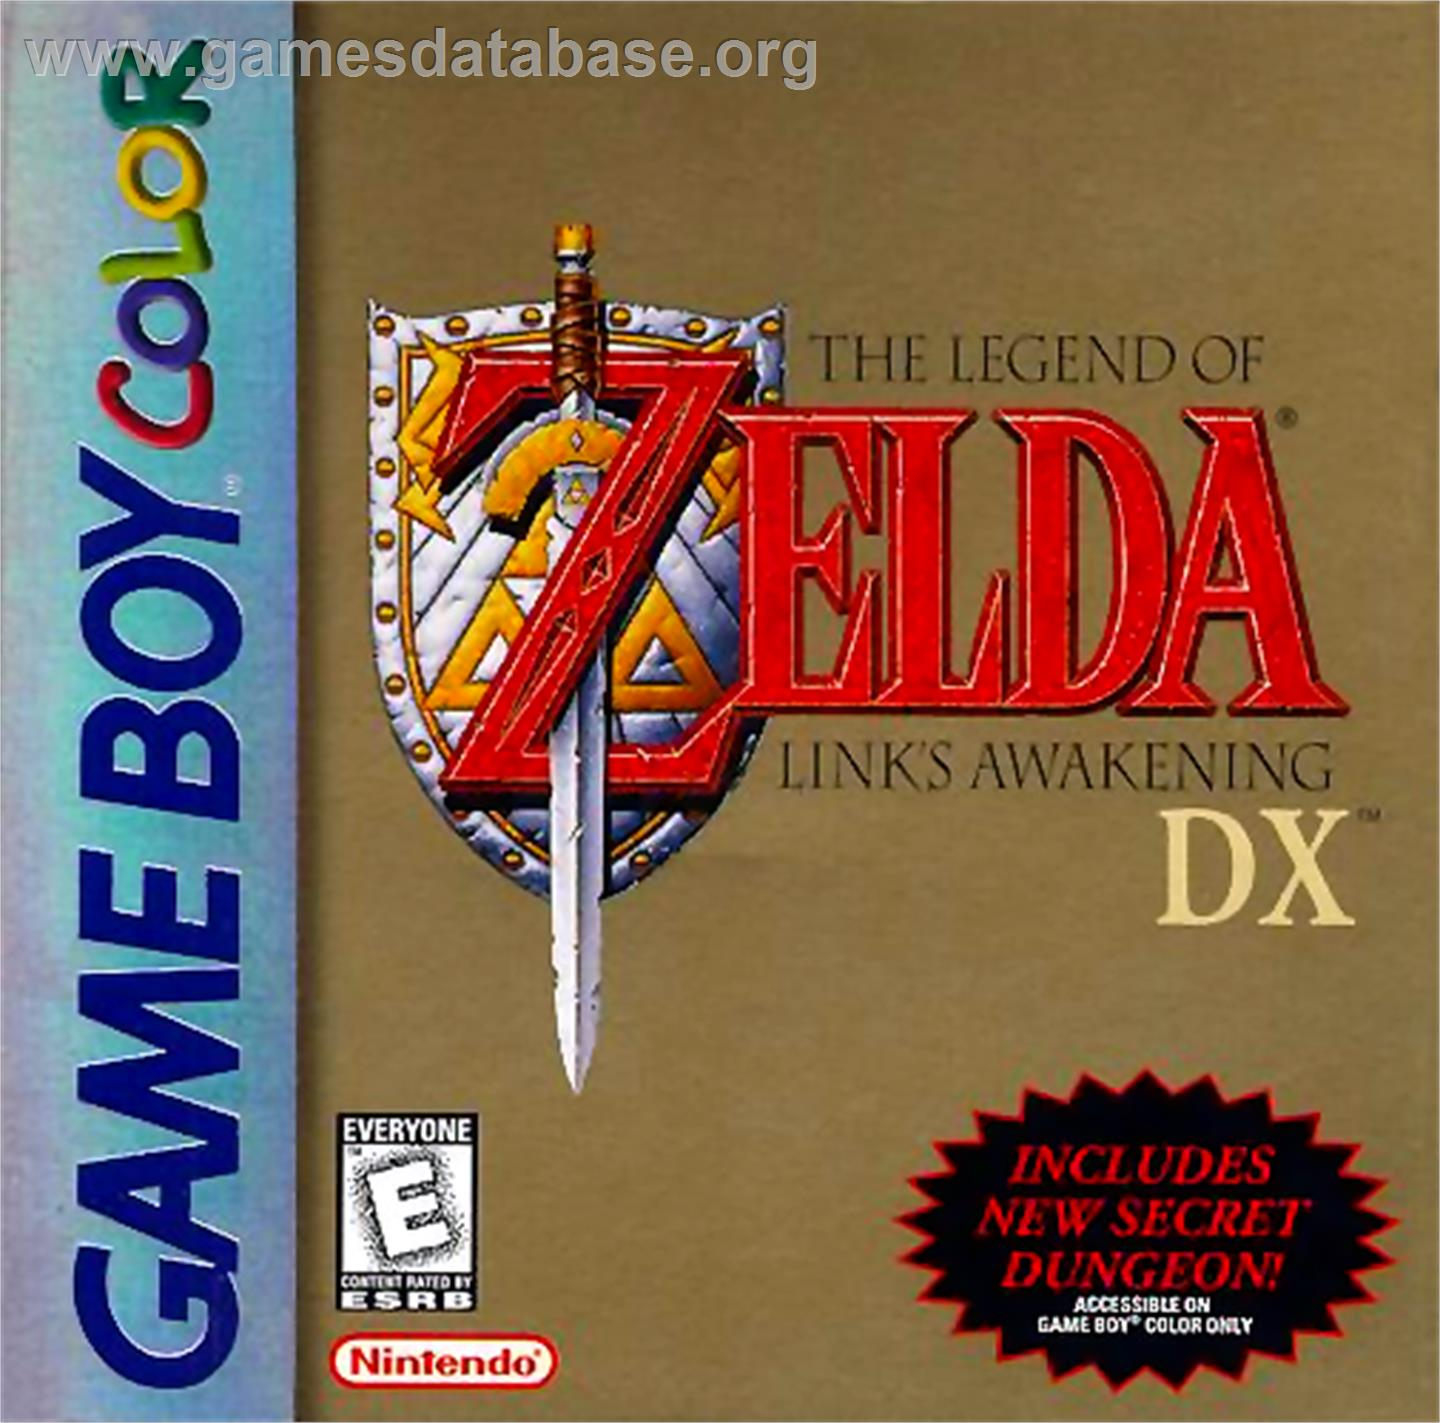 Legend of Zelda: Link's Awakening DX - Nintendo Game Boy Color - Artwork - Box